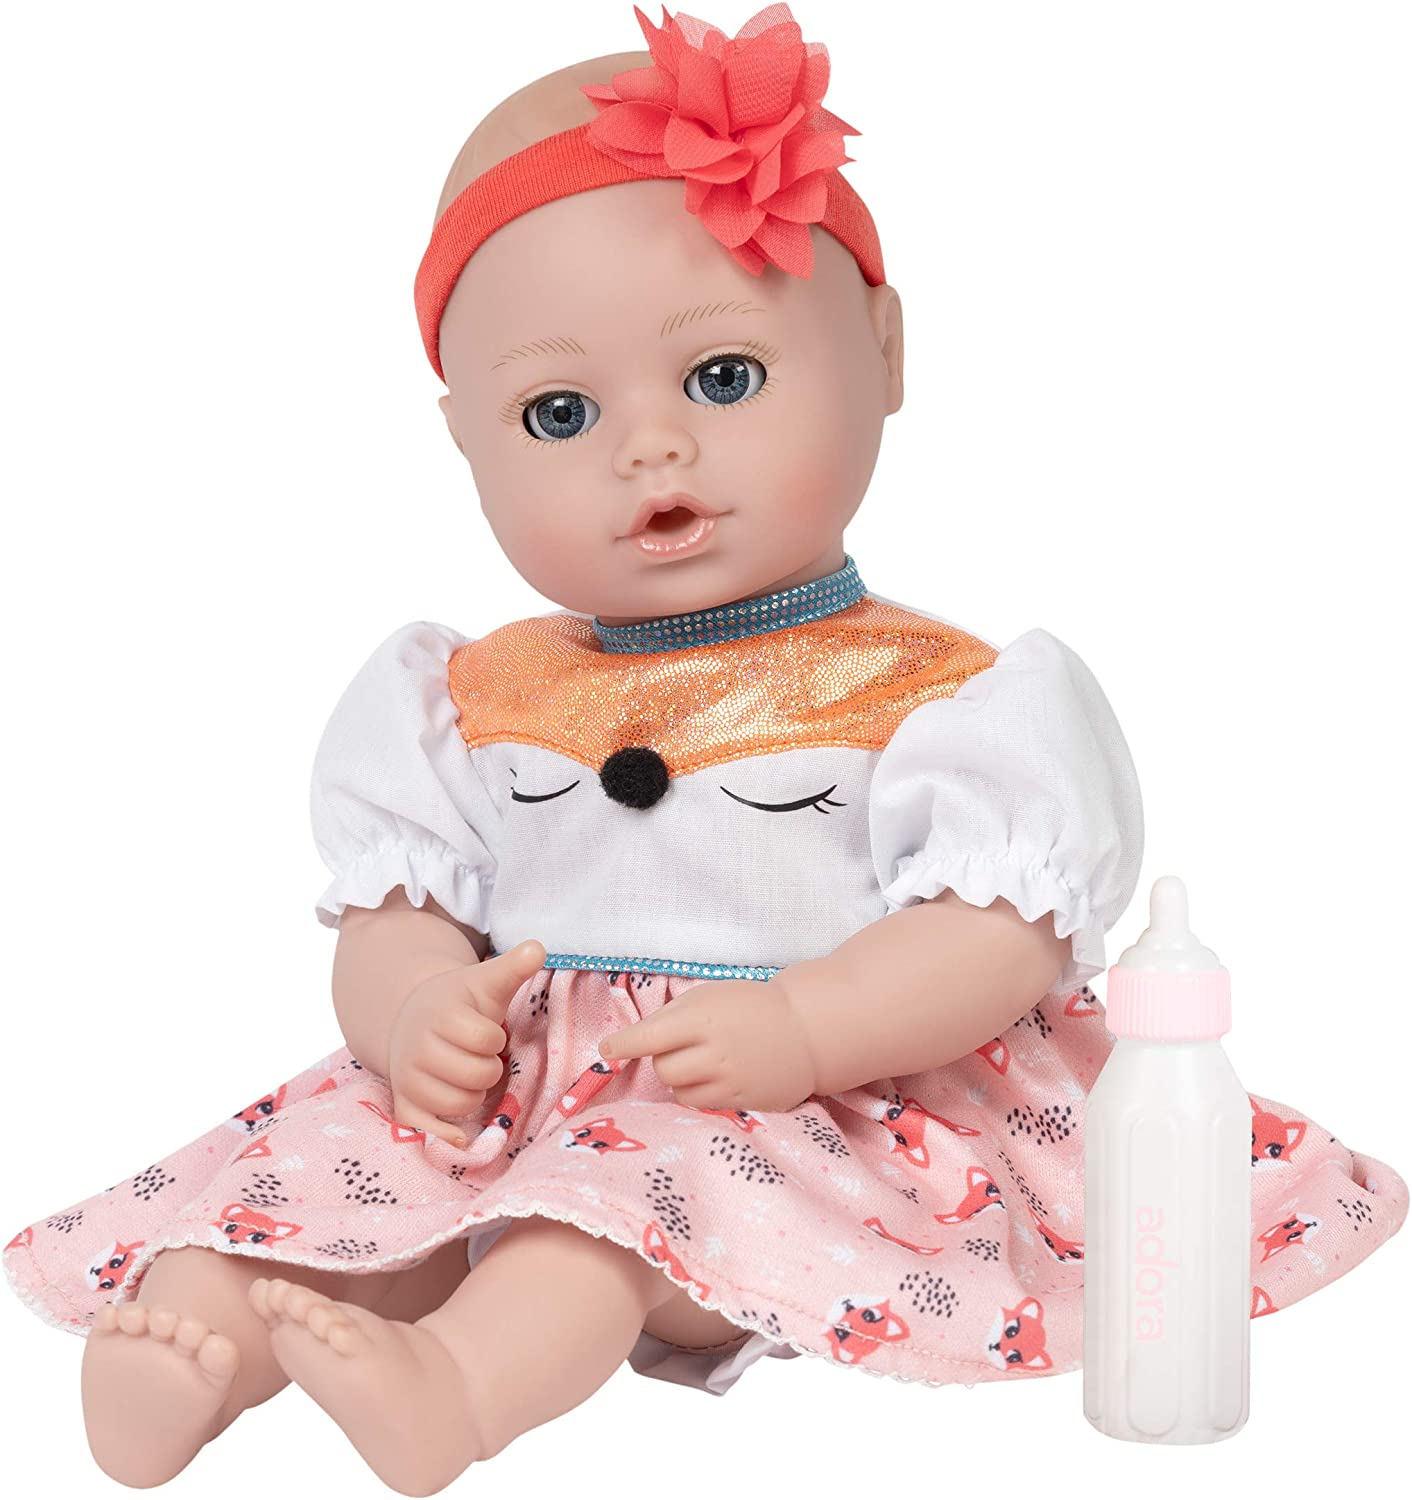 Adora My First Baby Doll - Playtime Whimsy Fox, 13 inches, Open Close Eyes, Can Suck Her Thumb